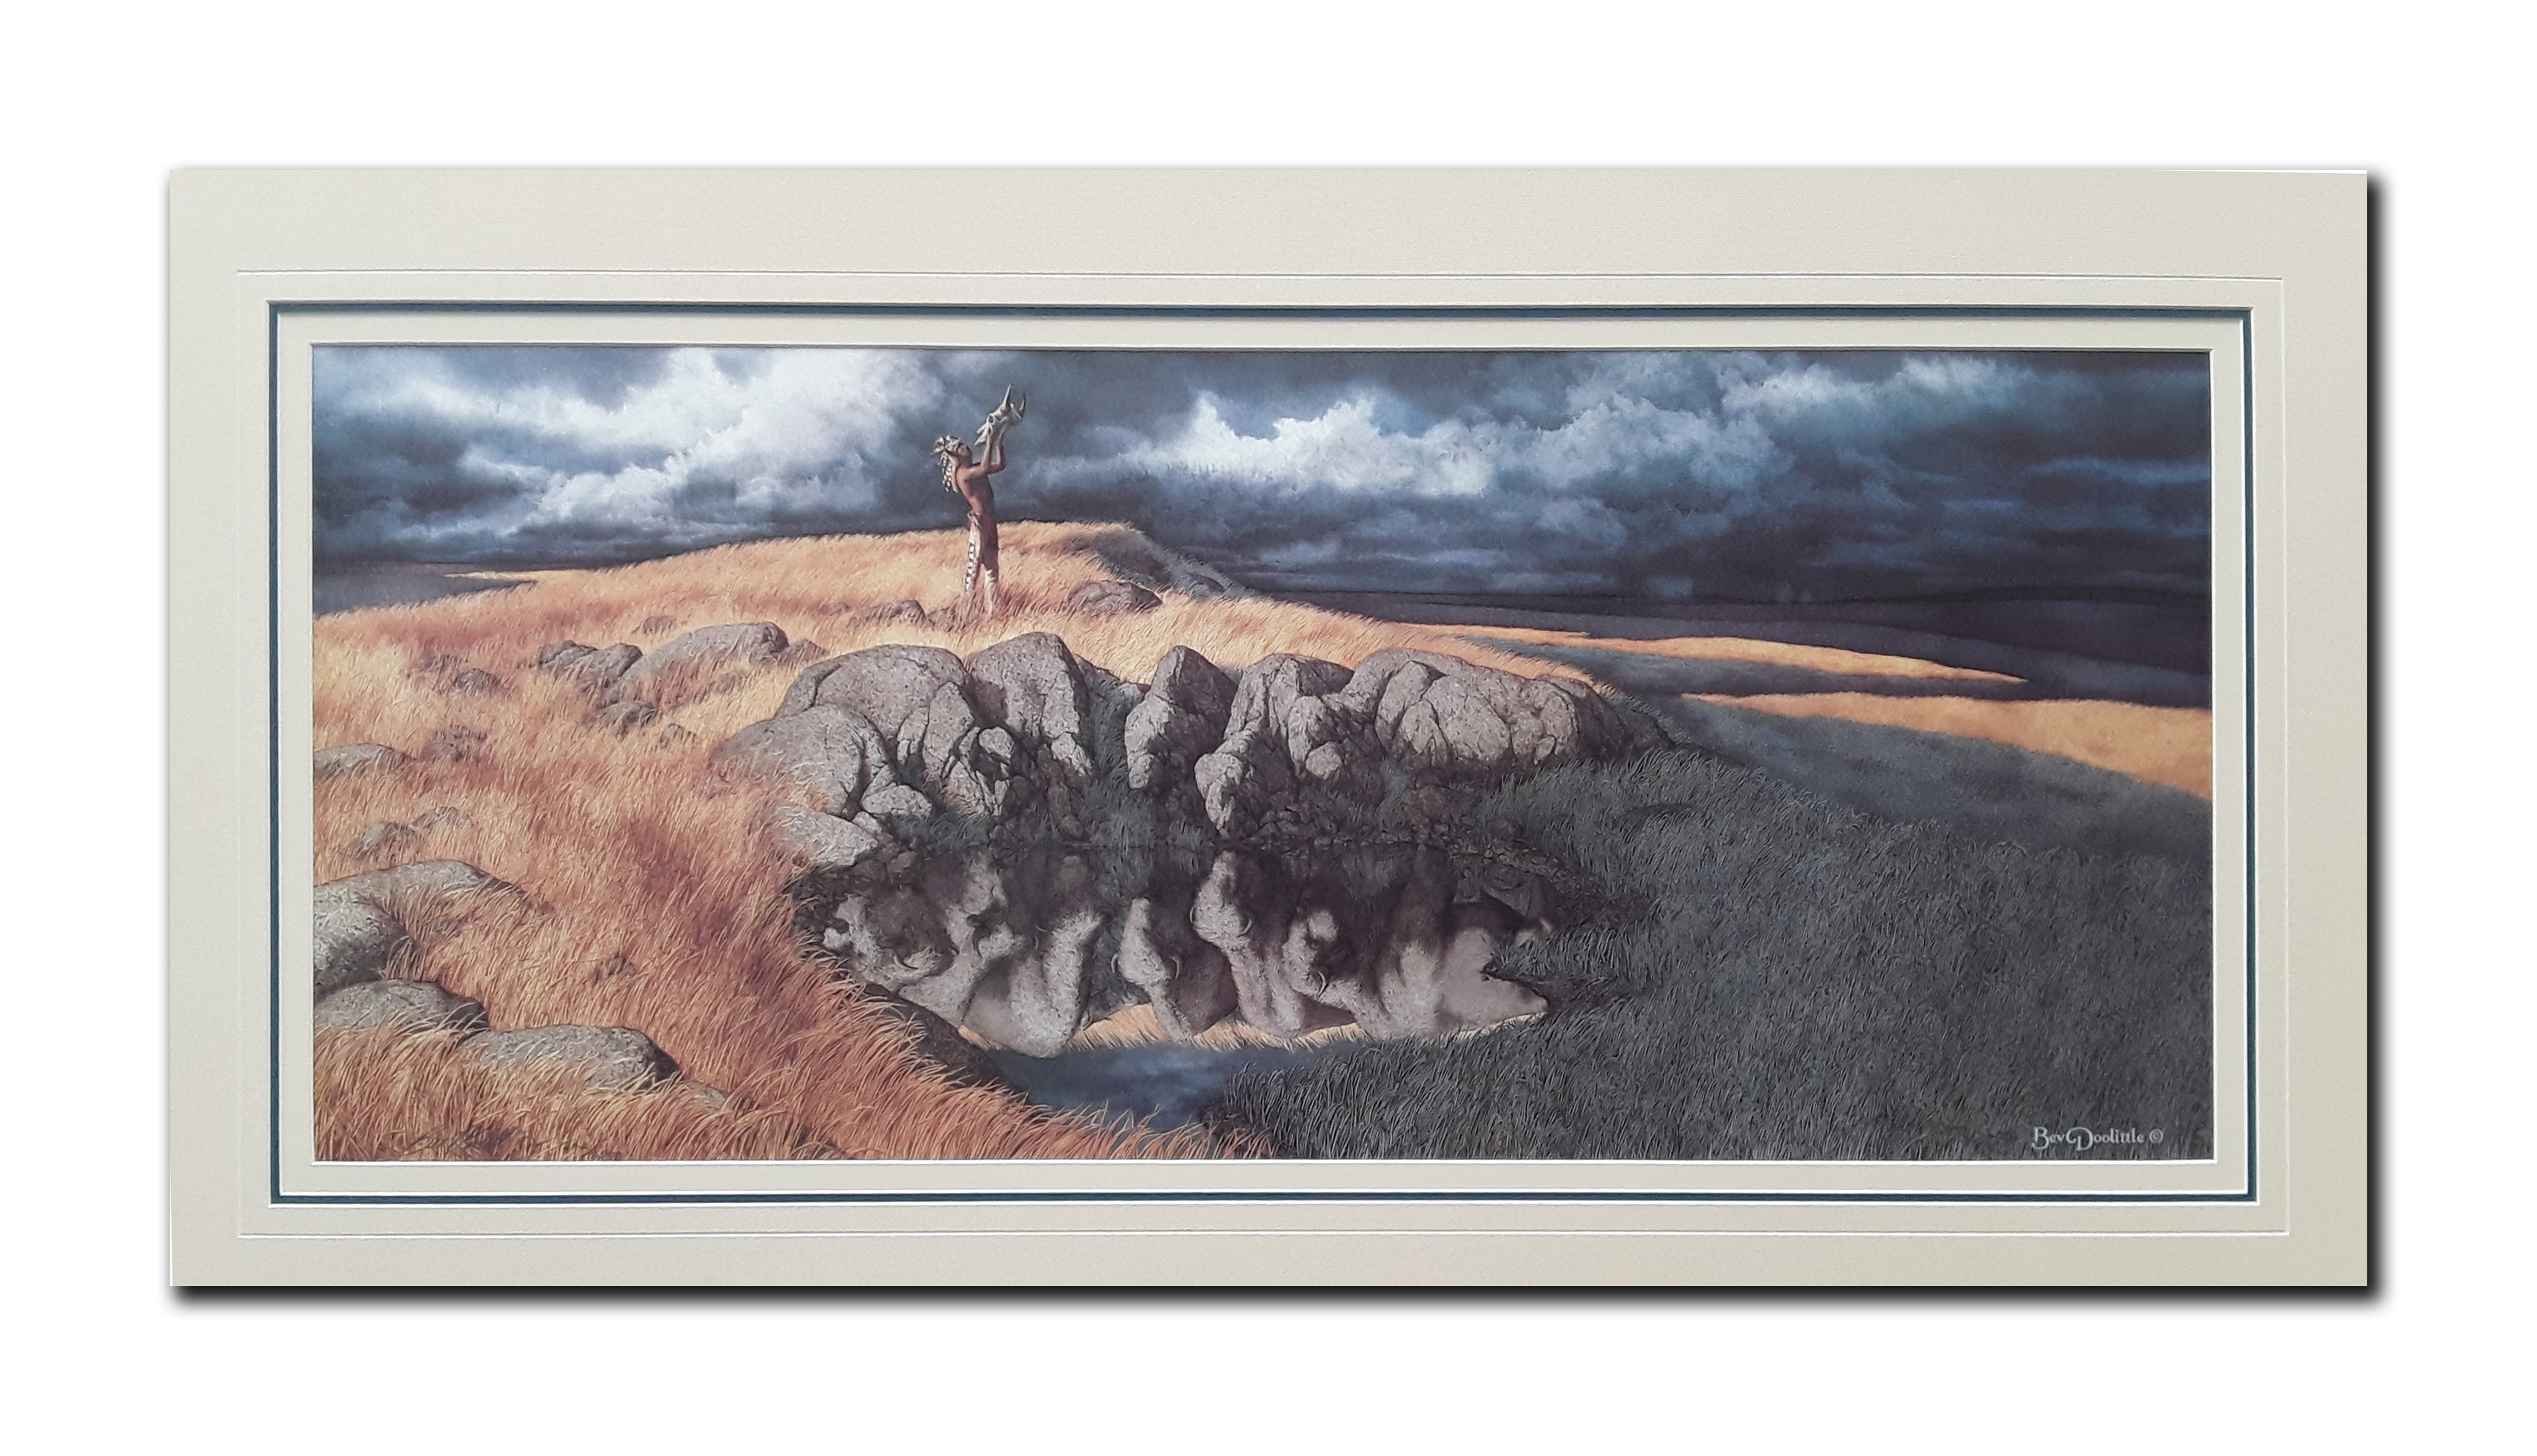 """Bev Doolittle's """"Calling The Buffalo"""" Limited Edition Matted Print"""